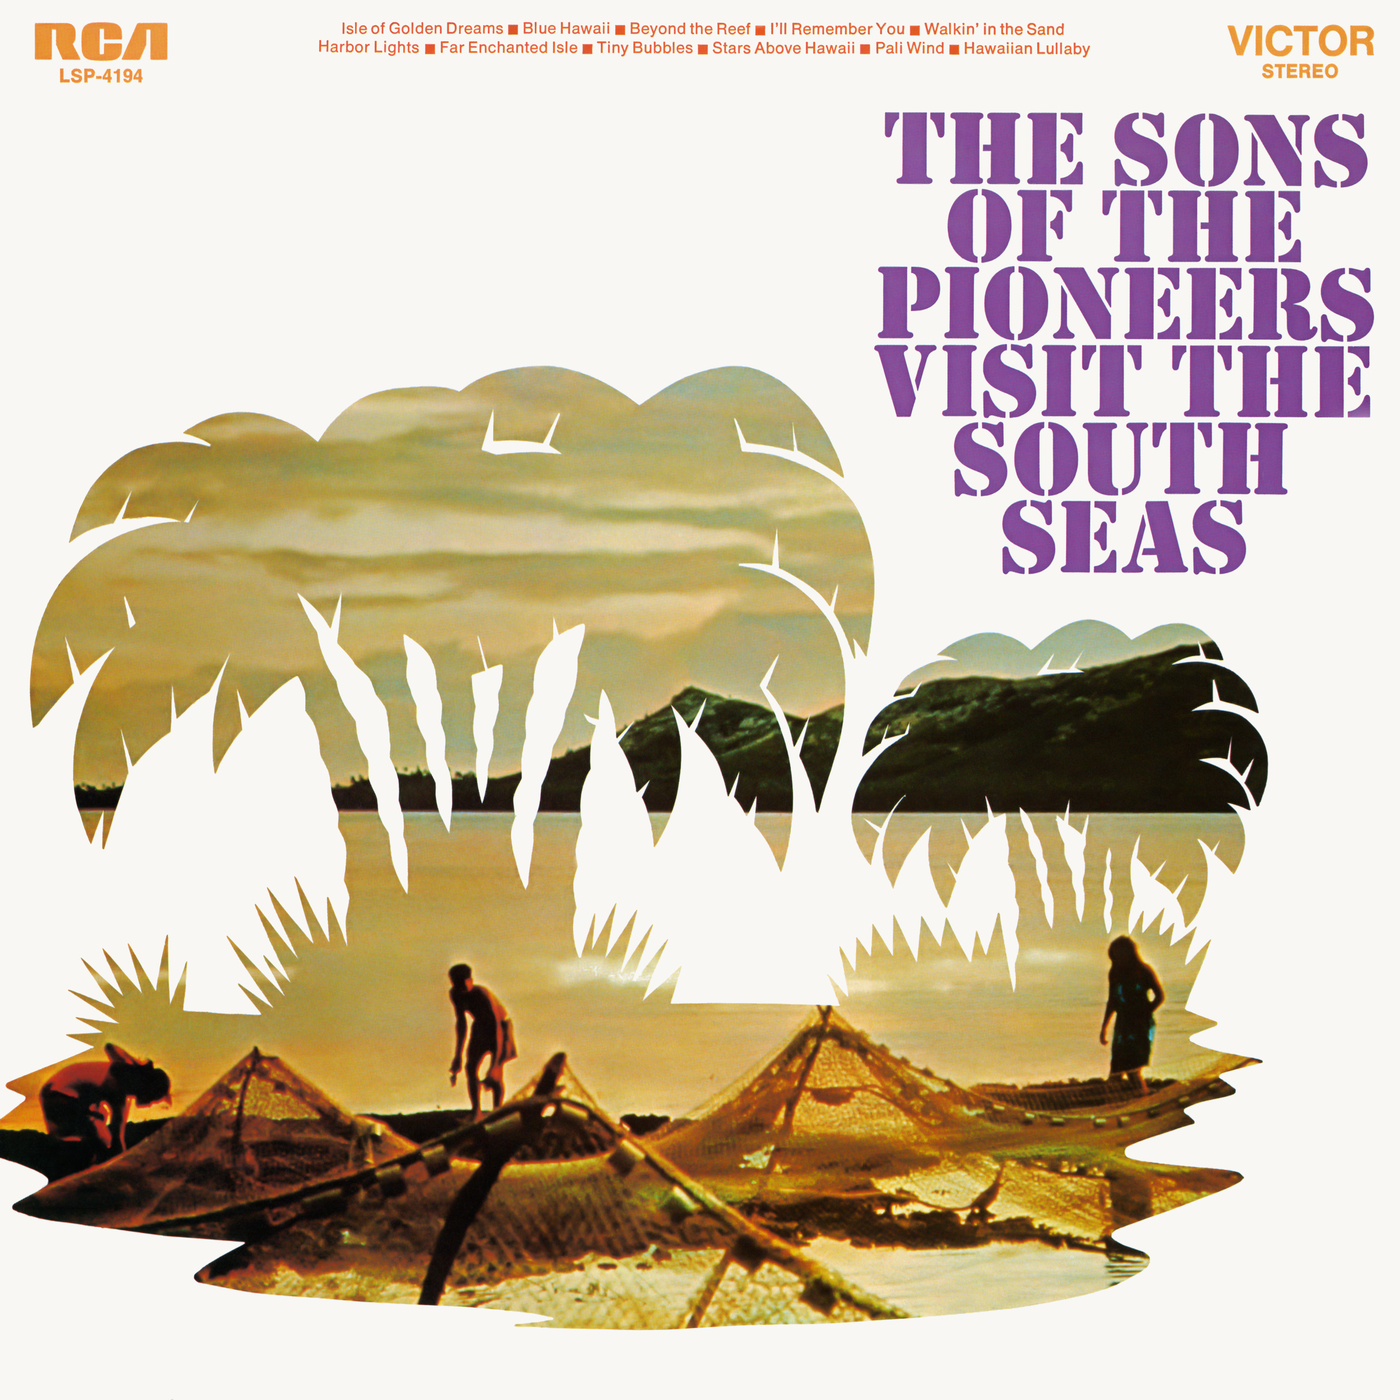 Visit the South Seas - The Sons Of The Pioneers